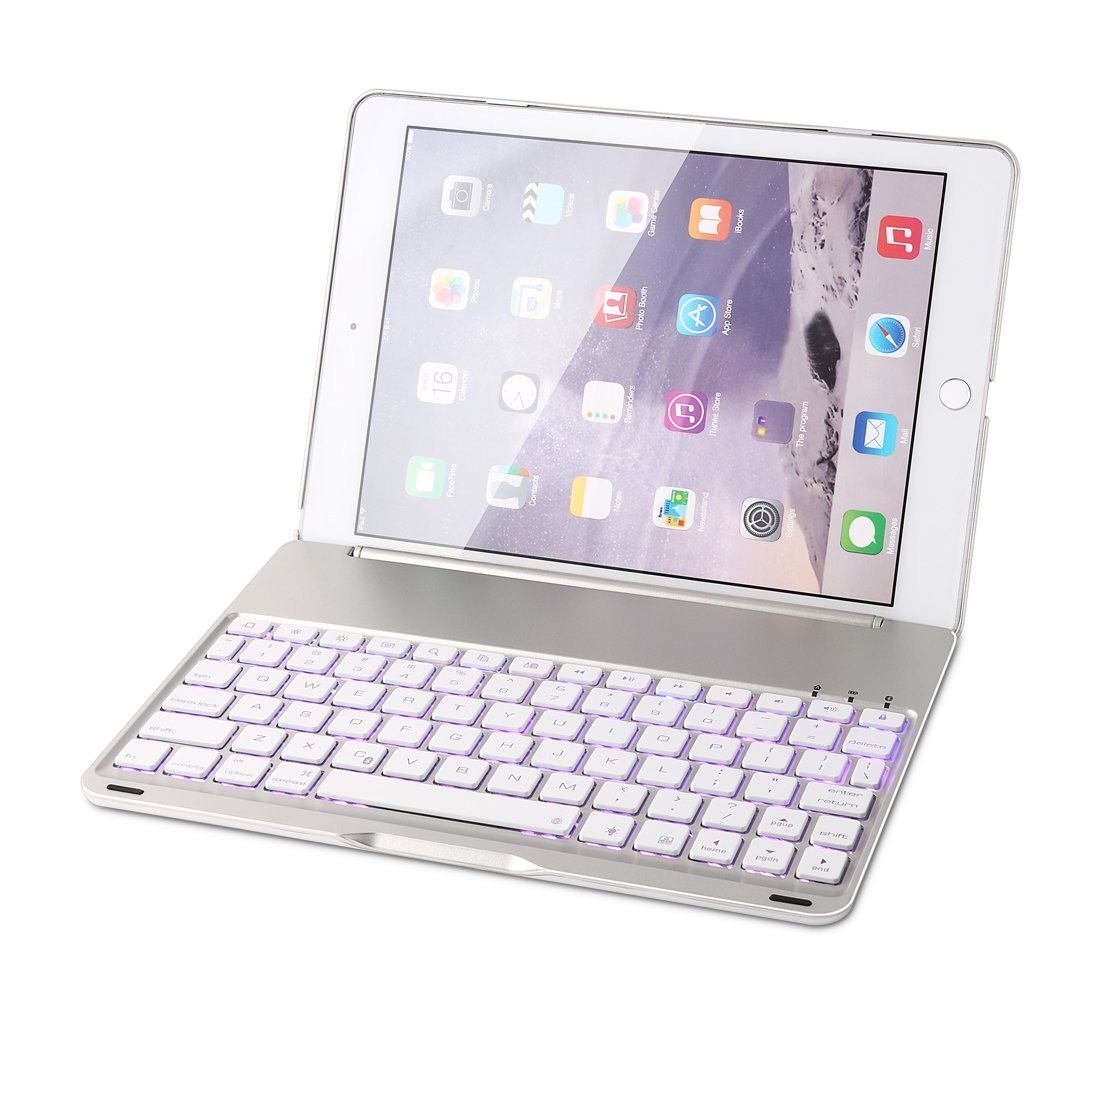 Wireless Keyboard Case for iPad Pro 9.7 Inch,Wireless Bluetooth Keyboard with 7 Color Backlit,Rotate Slim Folio Smart Cover,iPad Keyboard with Protective Case Cover (Silver)